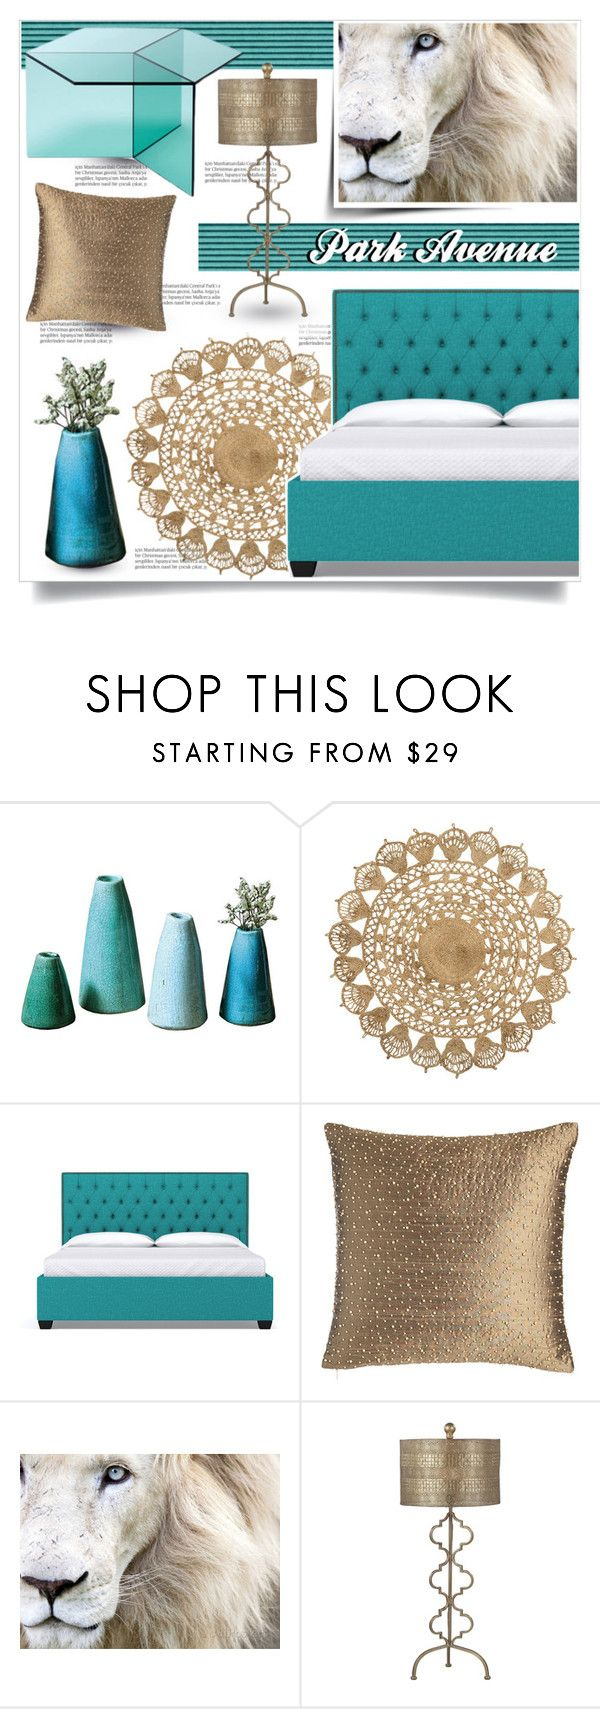 Park Avenue By Tammara D Liked On Polyvore Featuring Interior Interiors